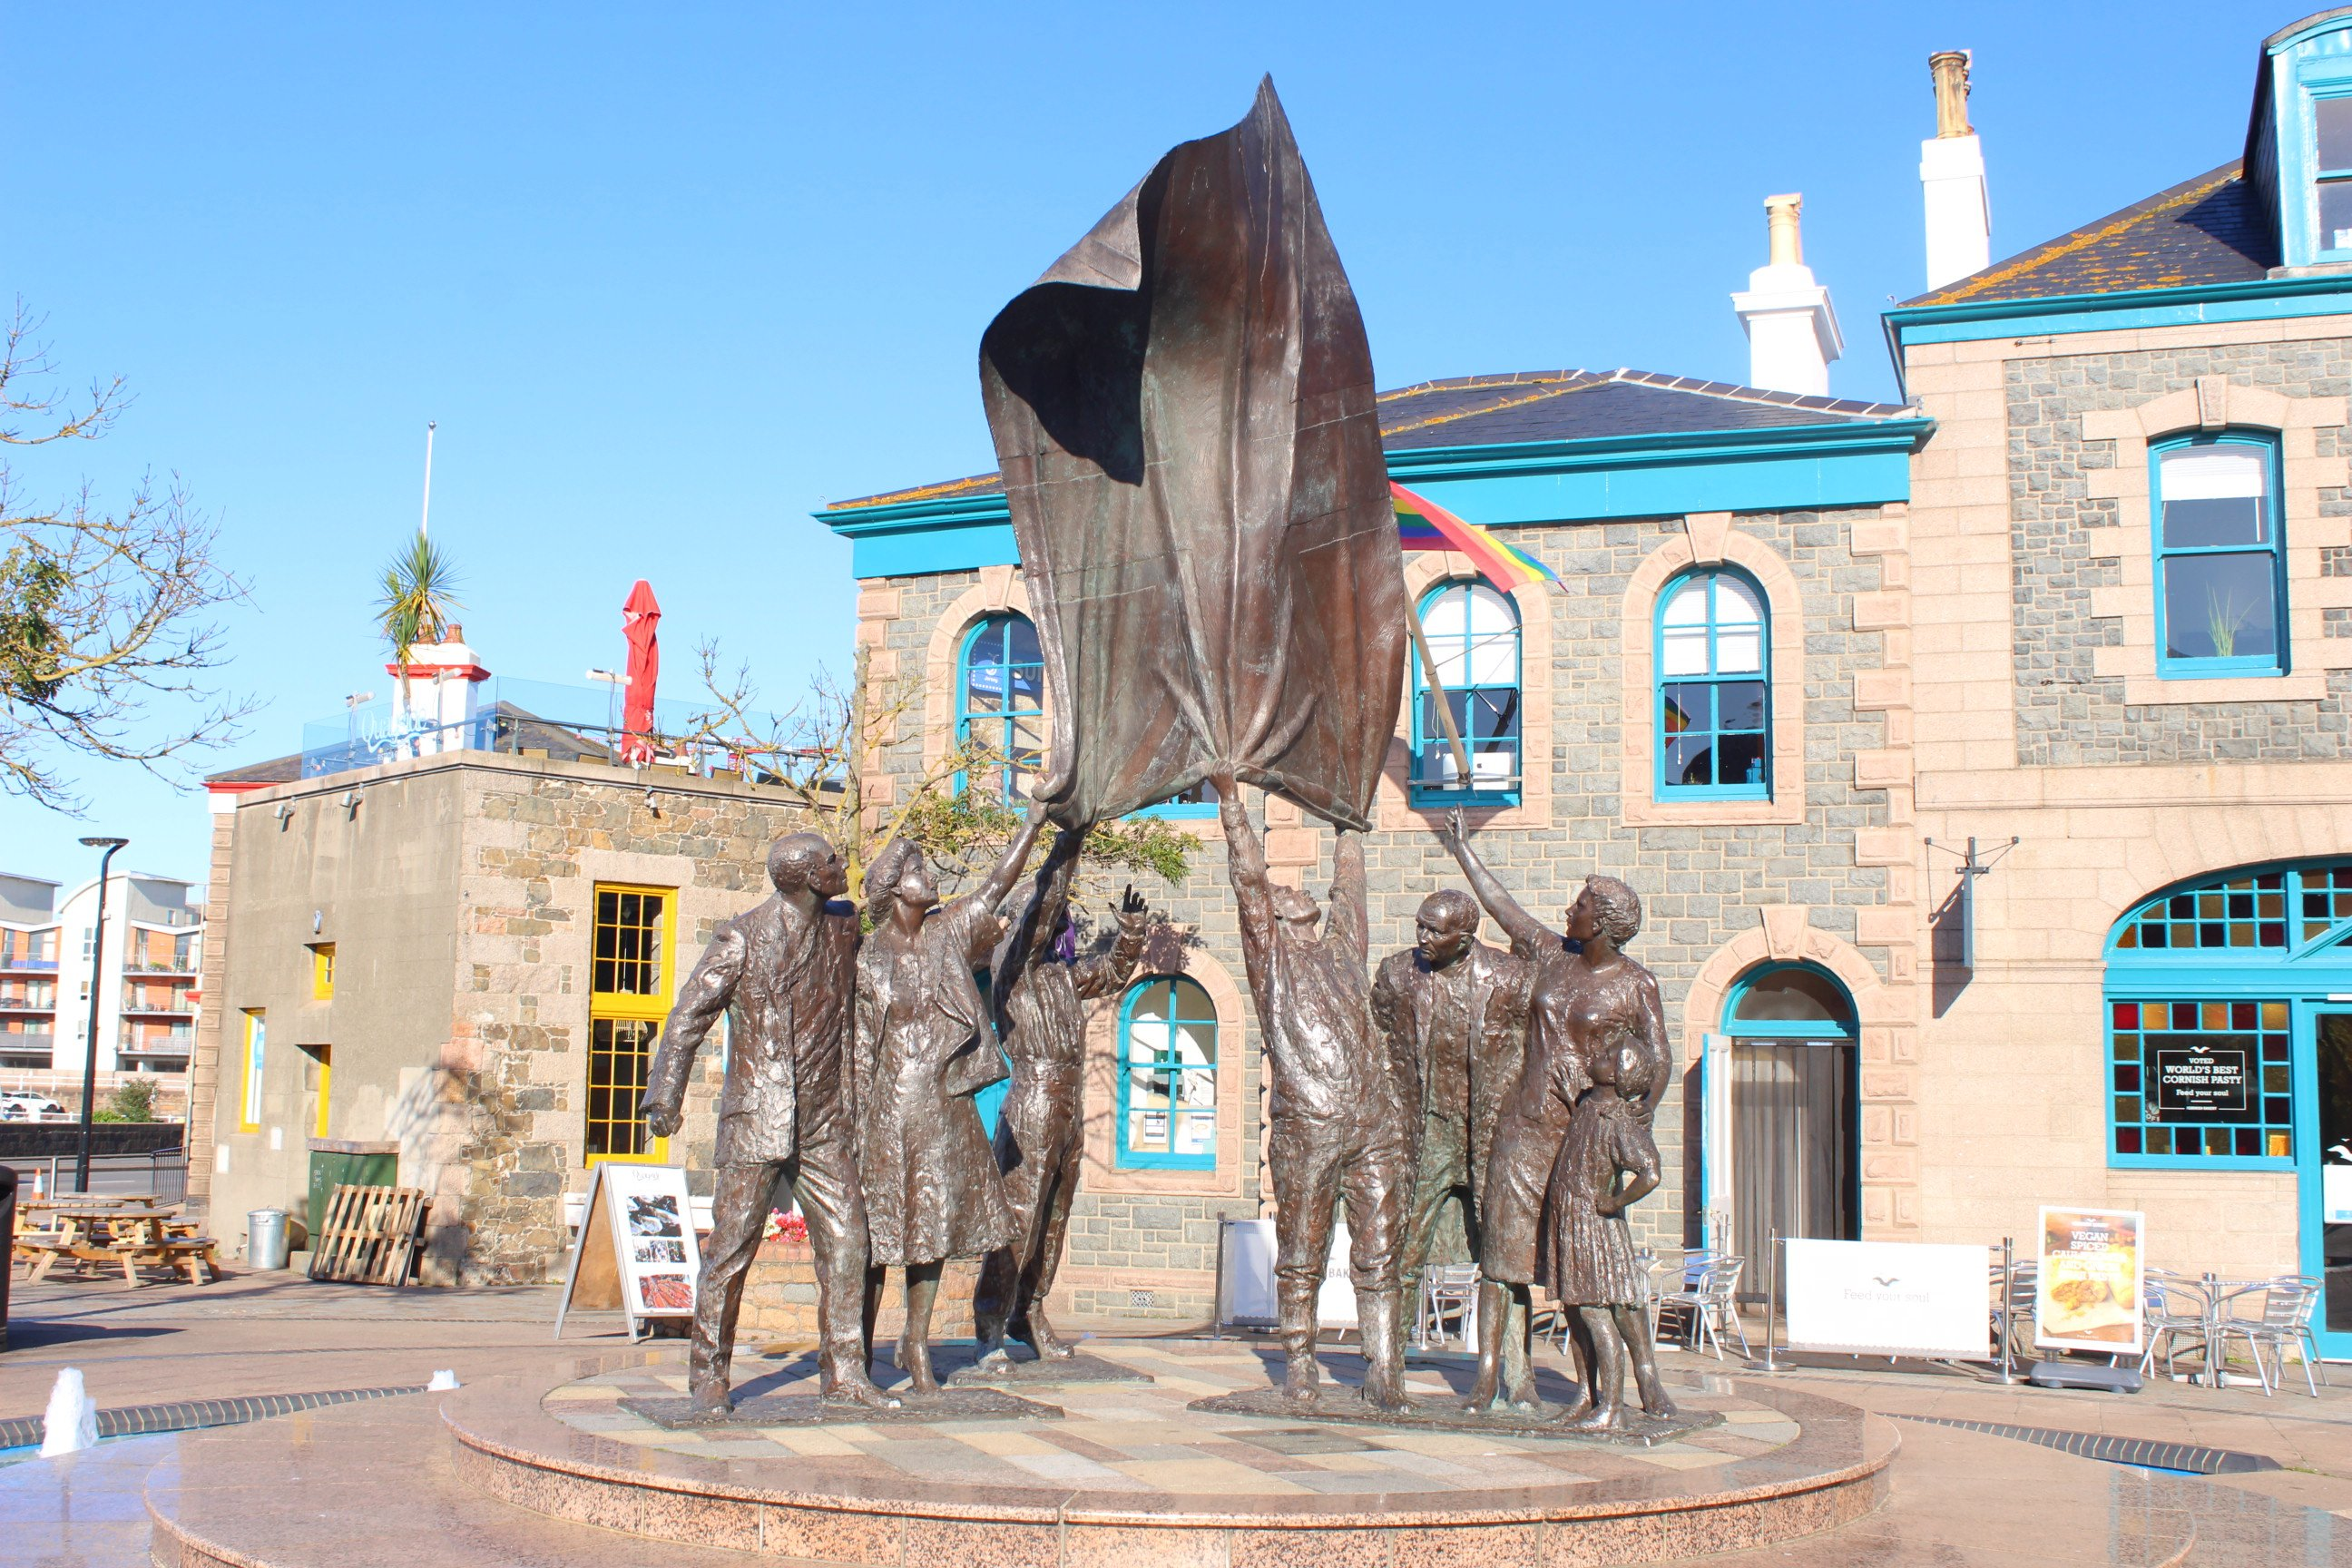 Liberation Square in St Helier, Jersey